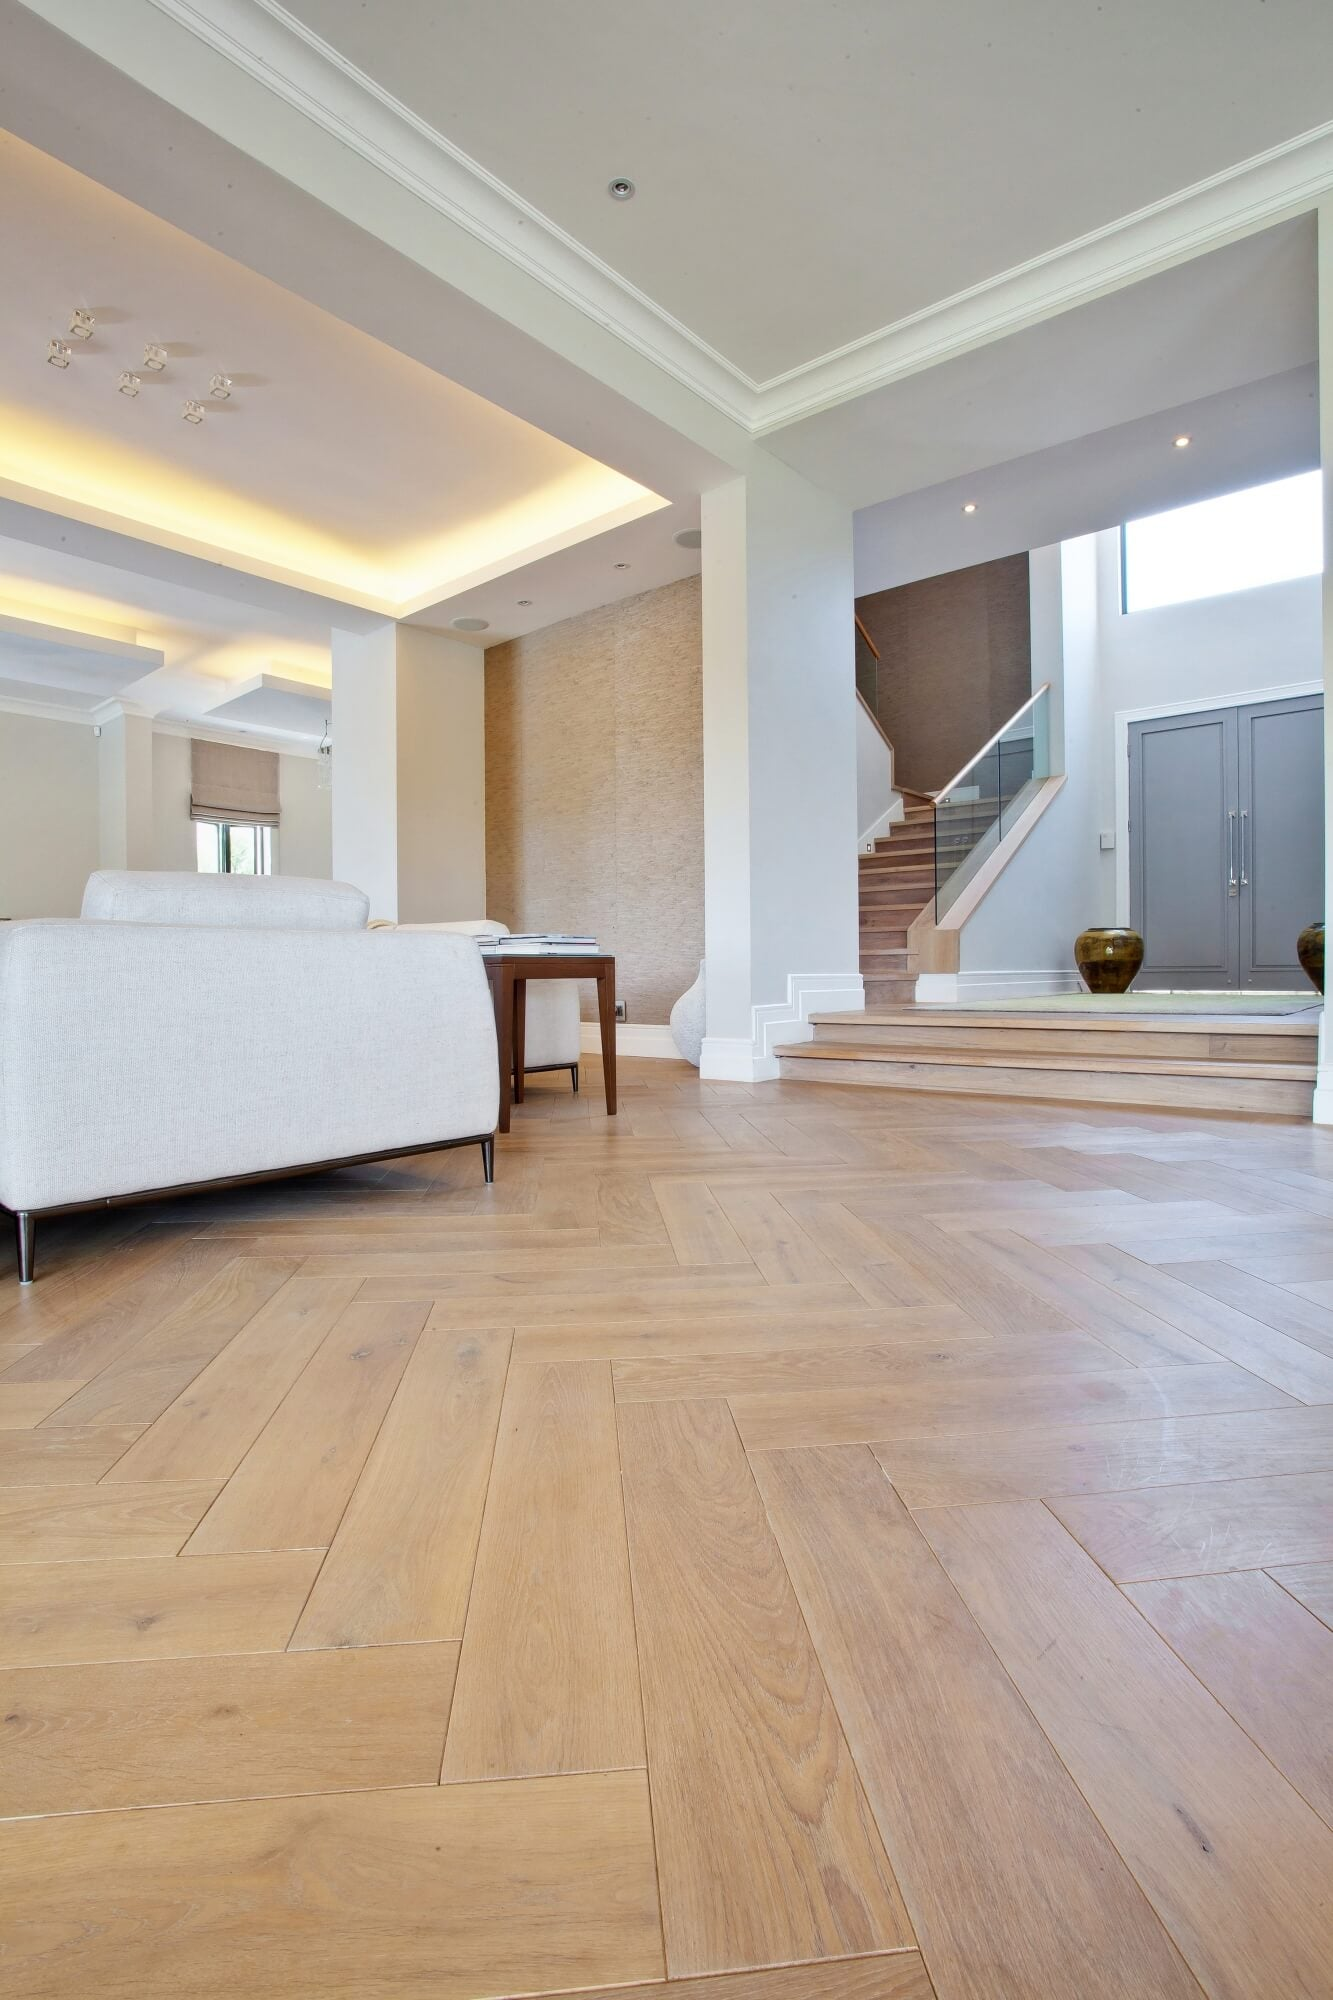 White oak herringbone floor finished with matte hardwax oil wood finish.